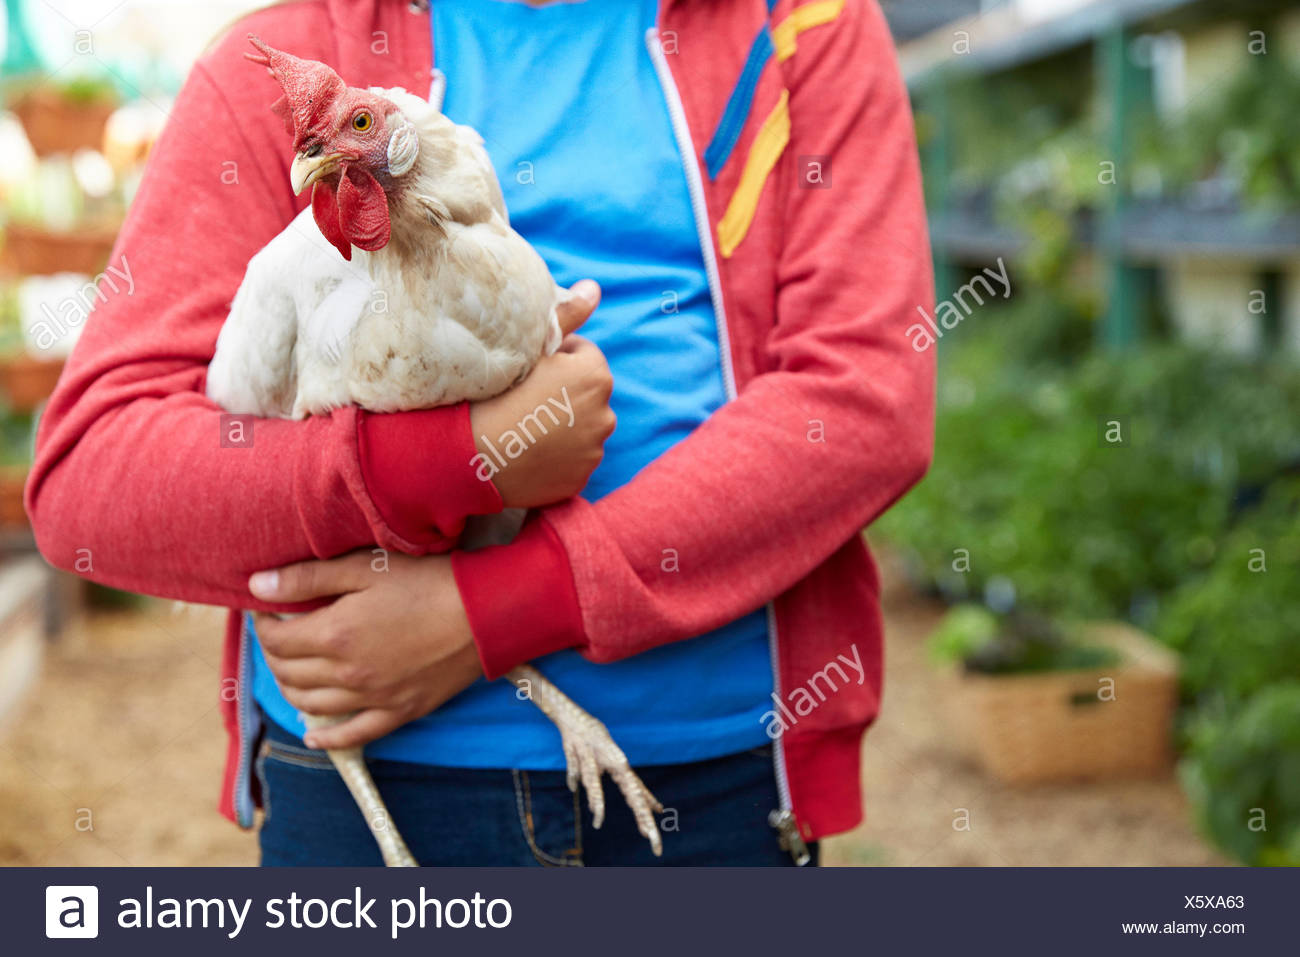 Close up girl holding chicken - Stock Image